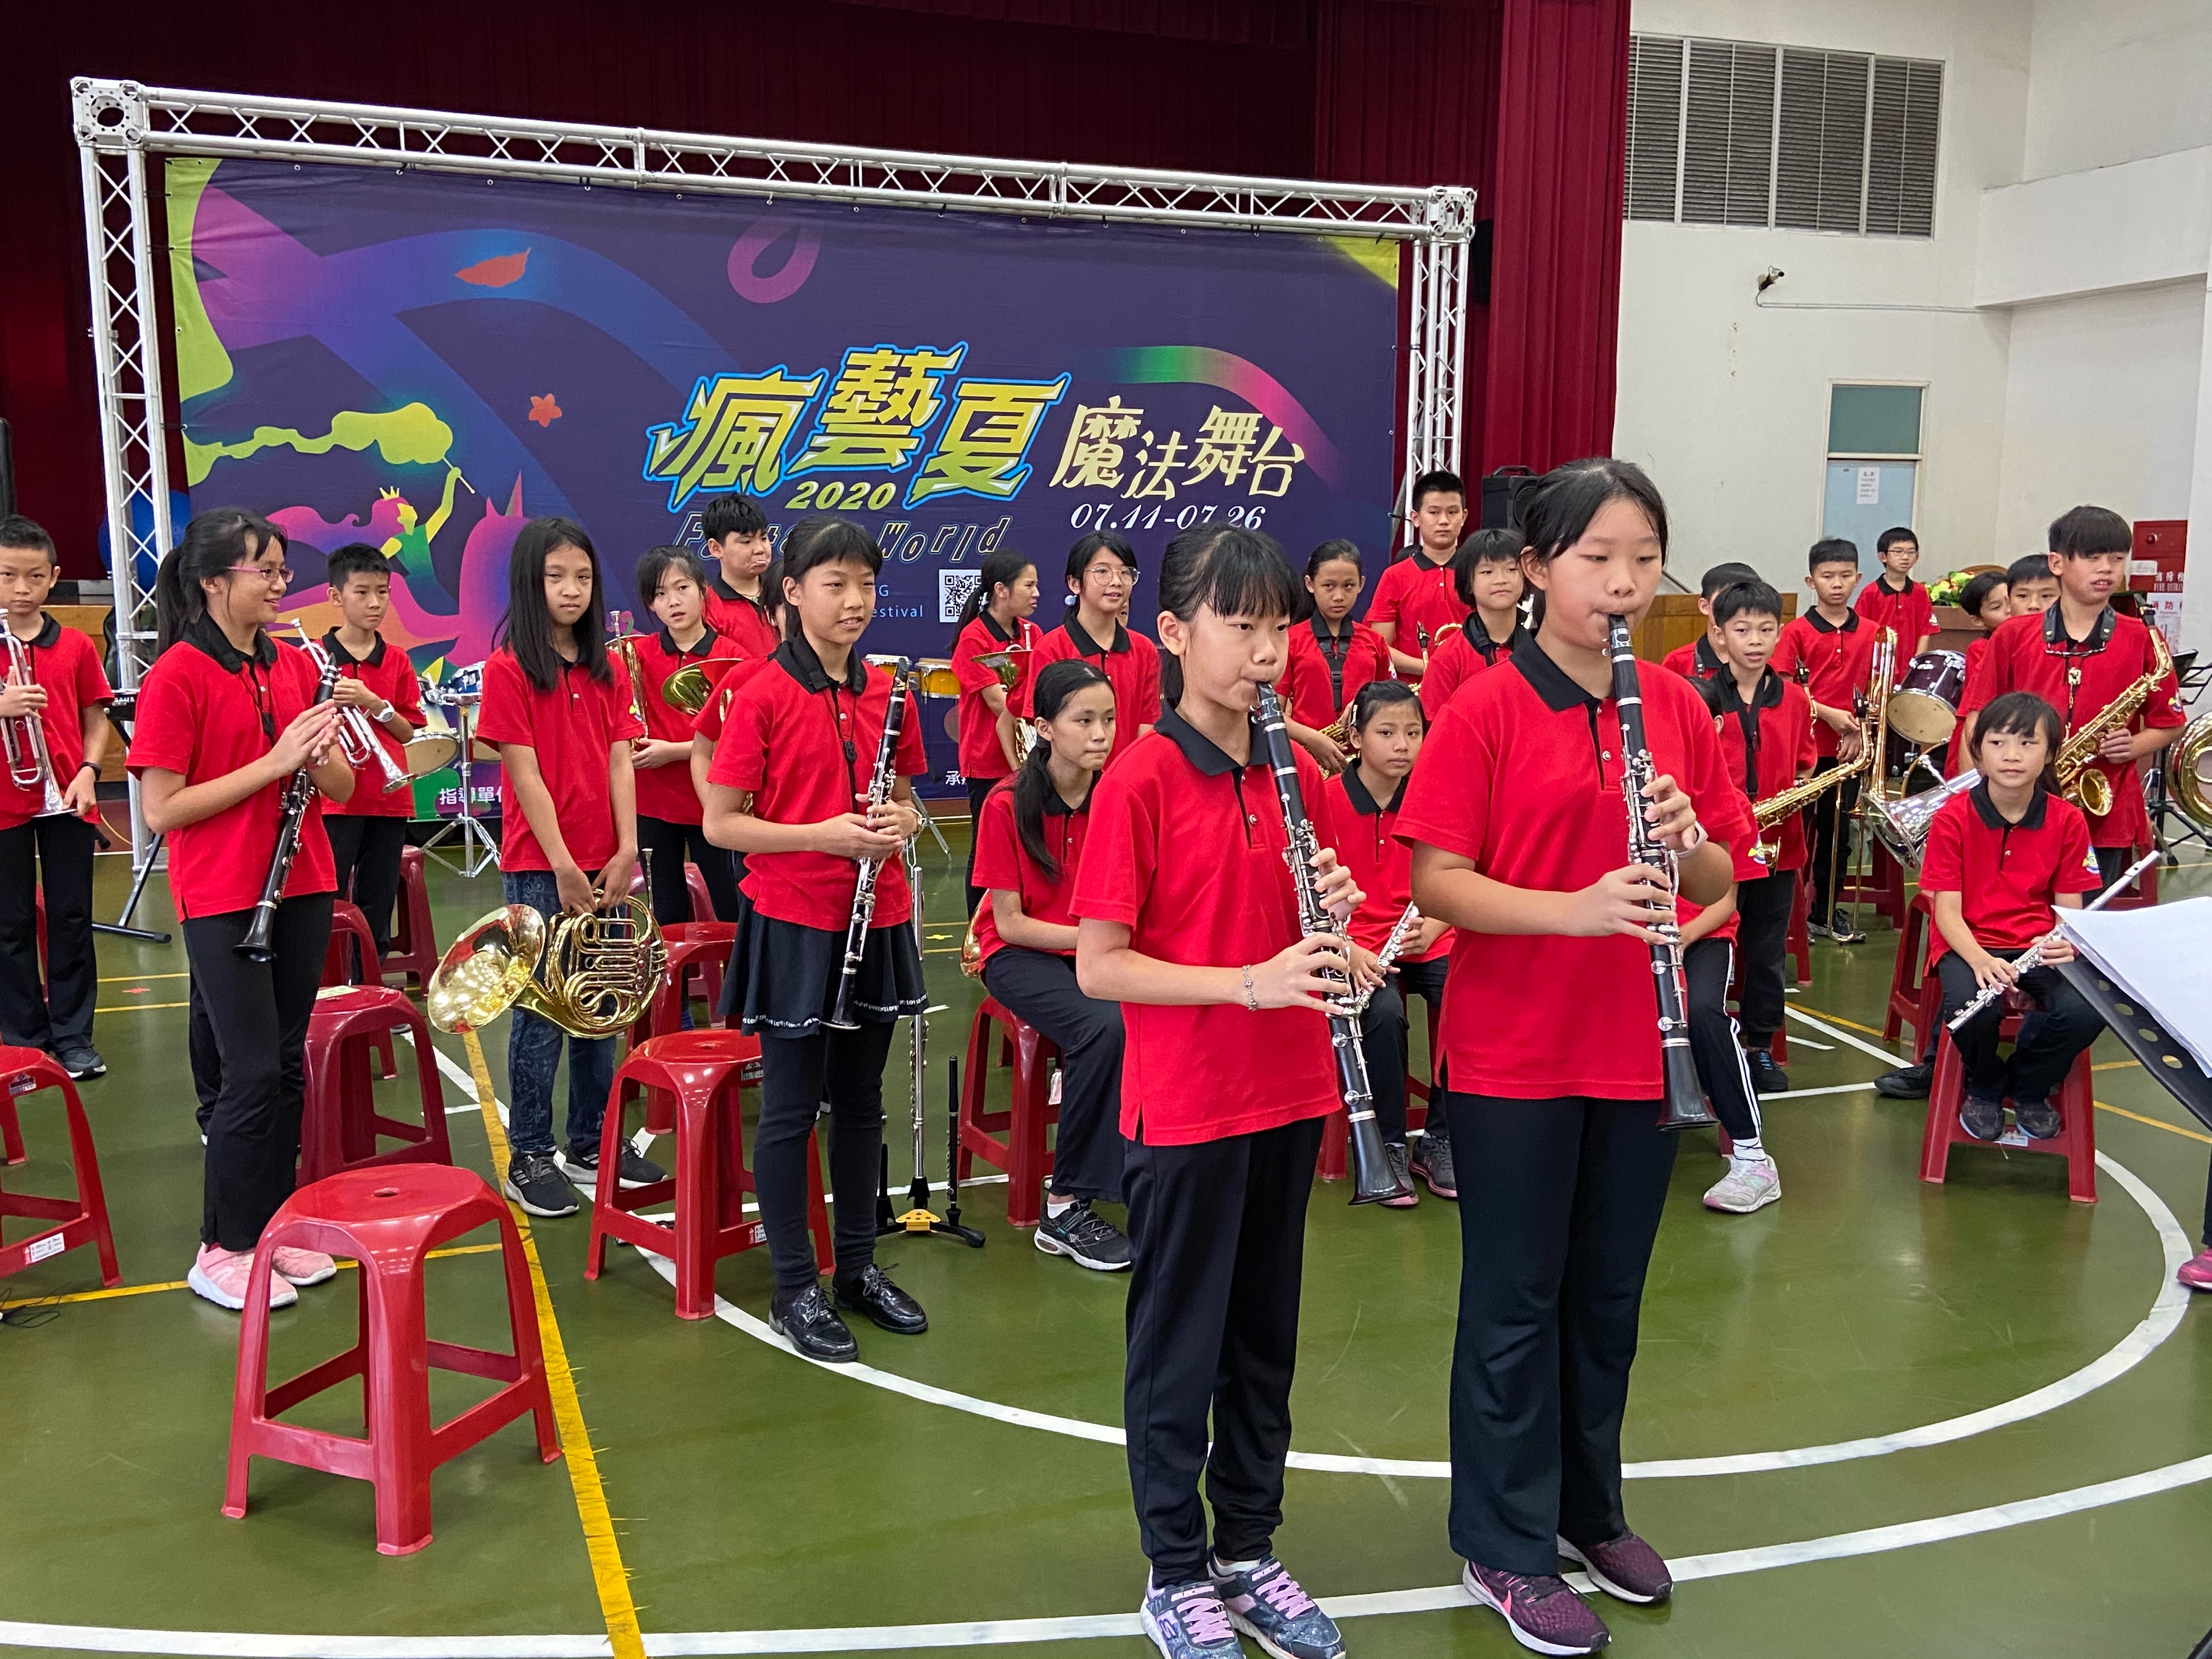 Frenzy Summer Magic Stage introduces the performance of different musical instruments to the disabled by students from Zhongzheng Elementary School